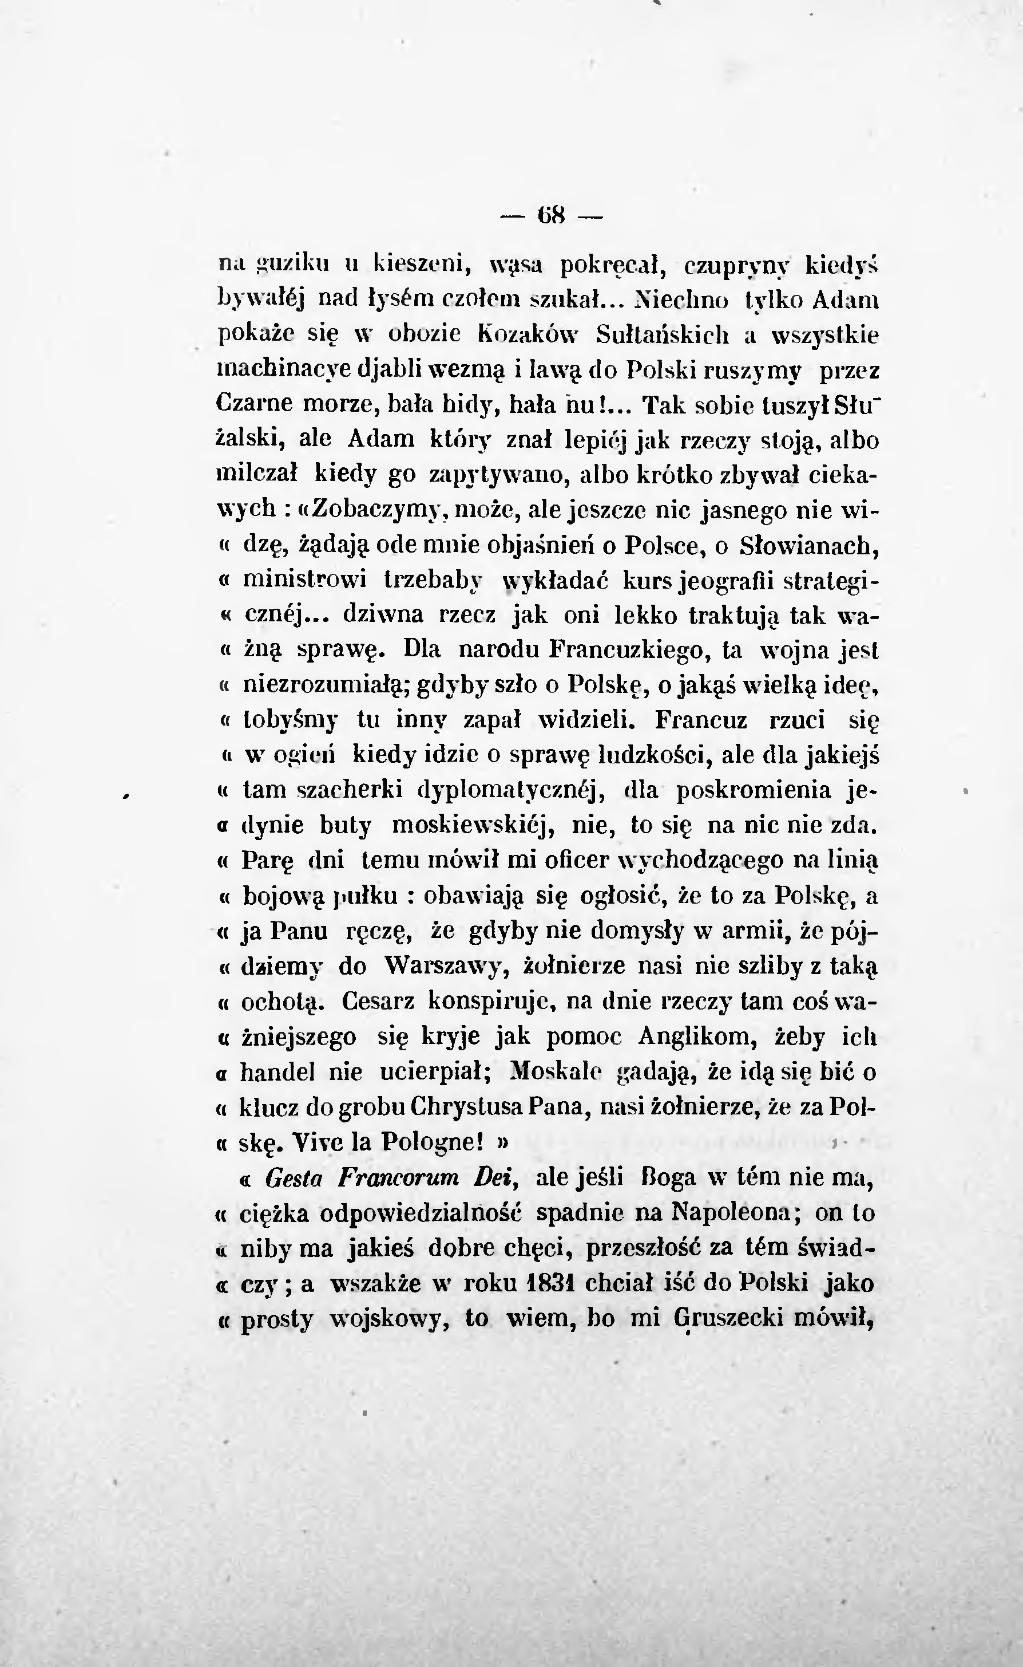 the gesta francorum The origins of the gesta francorum and two related texts: their textual and literary character.